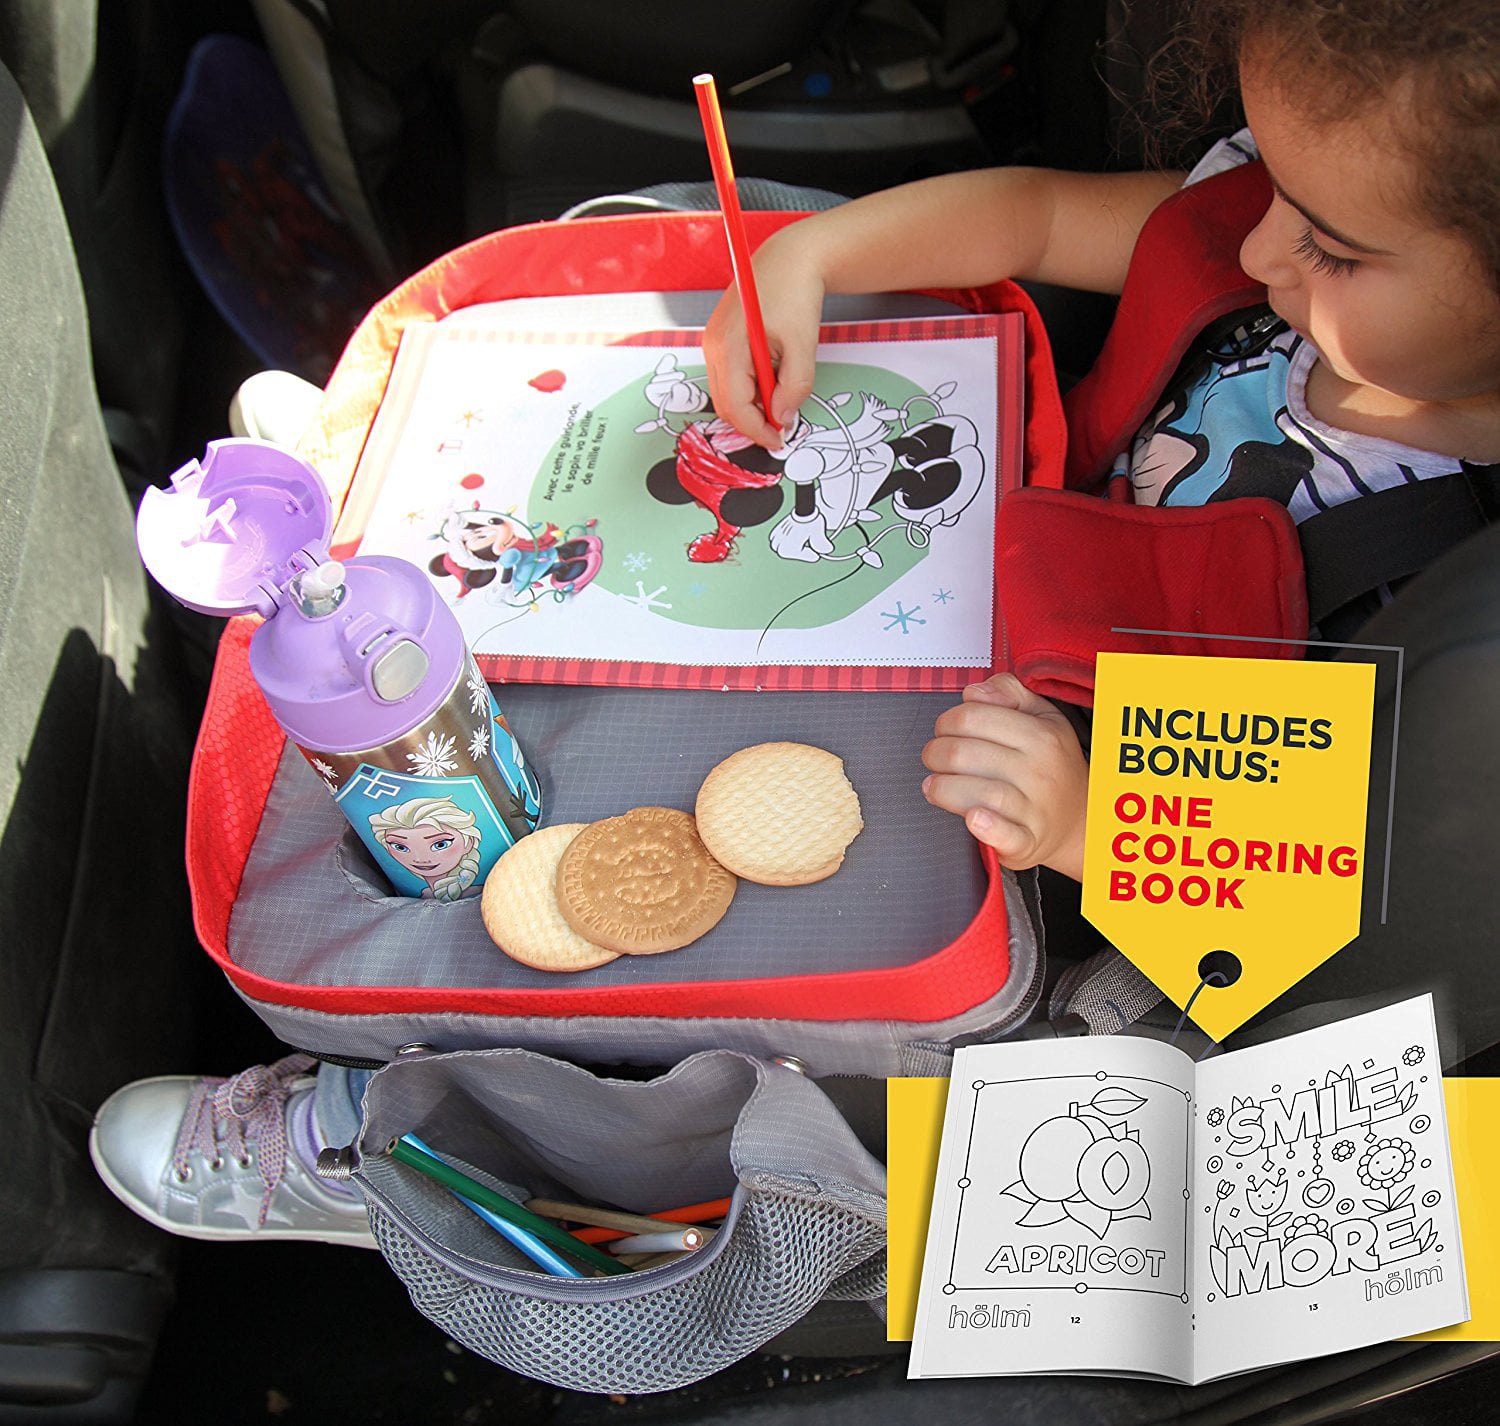 Cell Phones and Driver Accessories High Road Car Seat Tray for Snacks